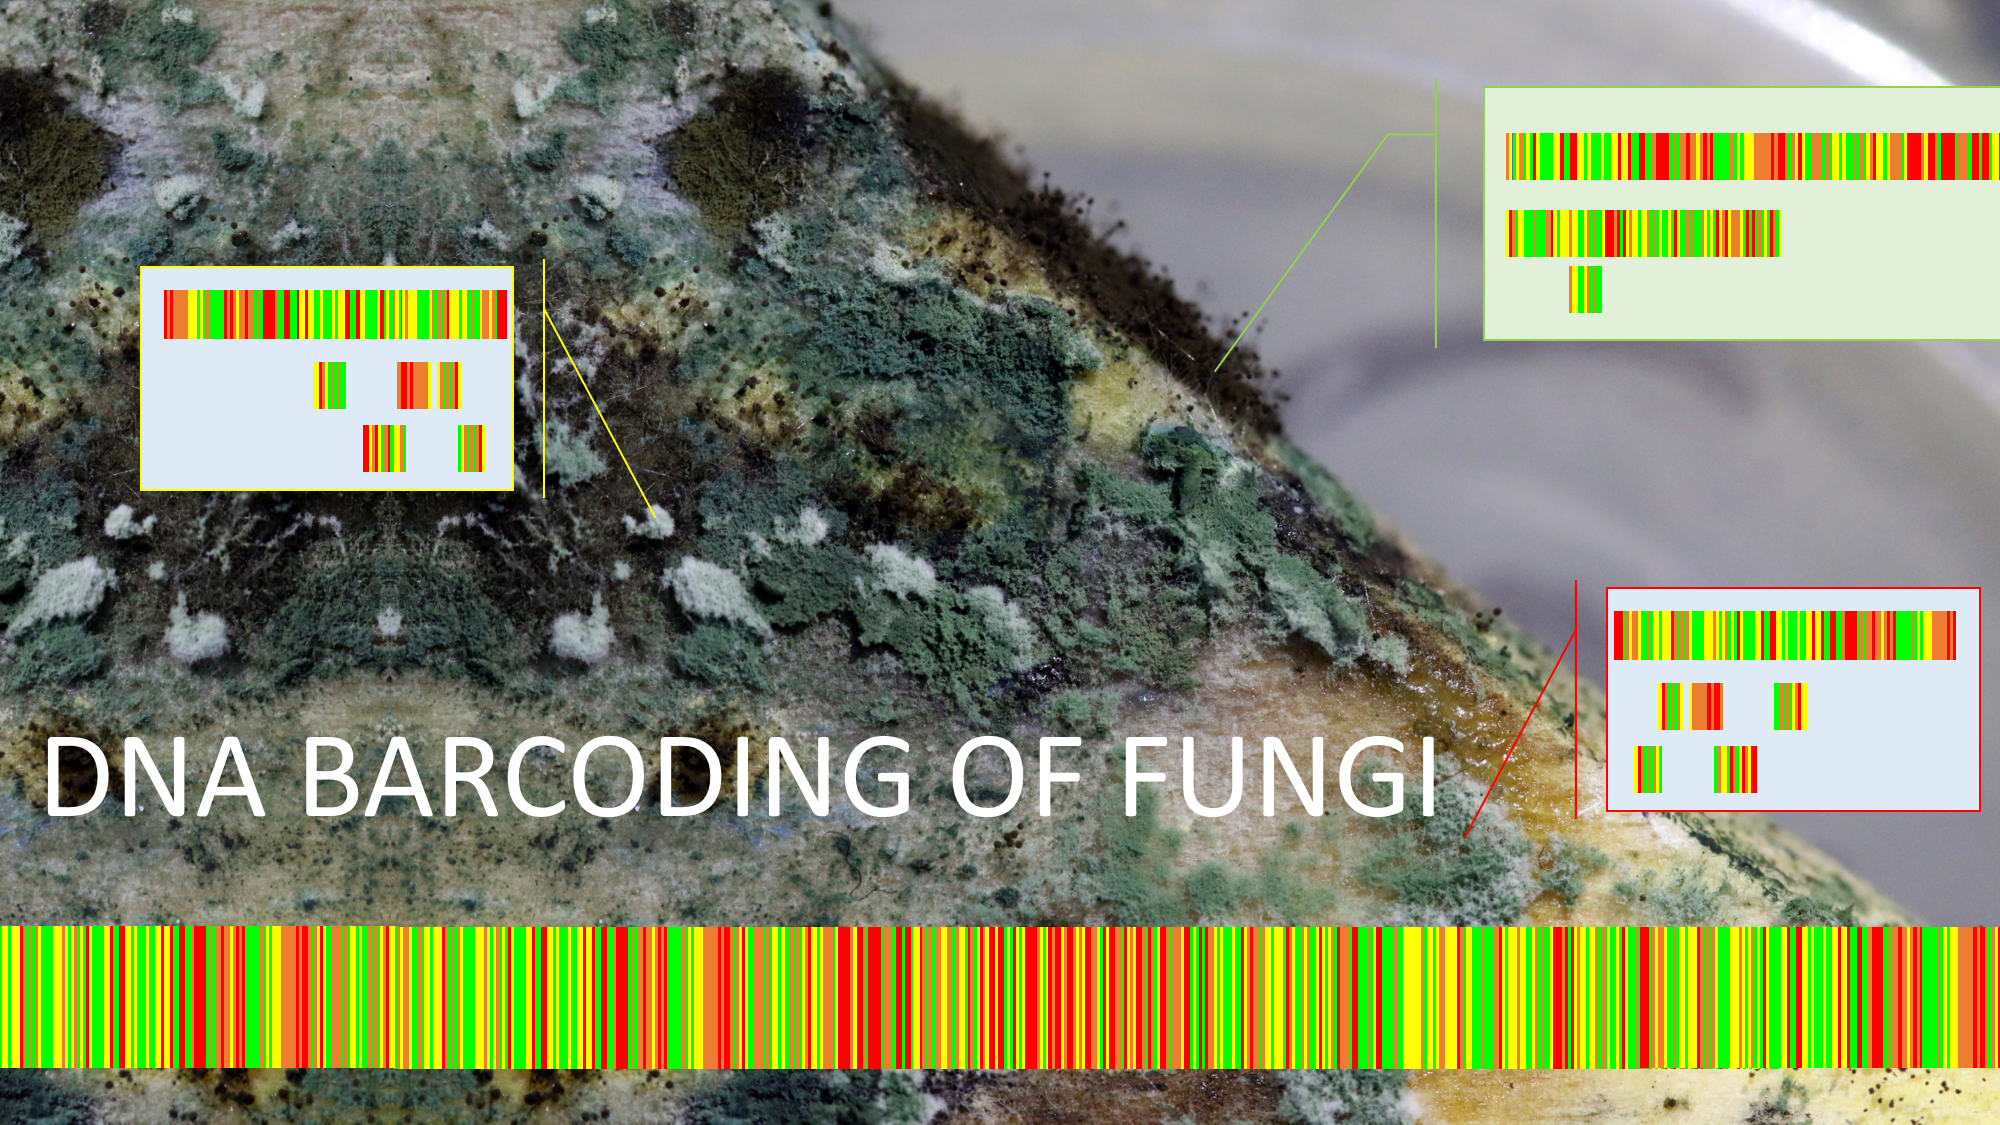 DNA Barcoding in FungiG cut